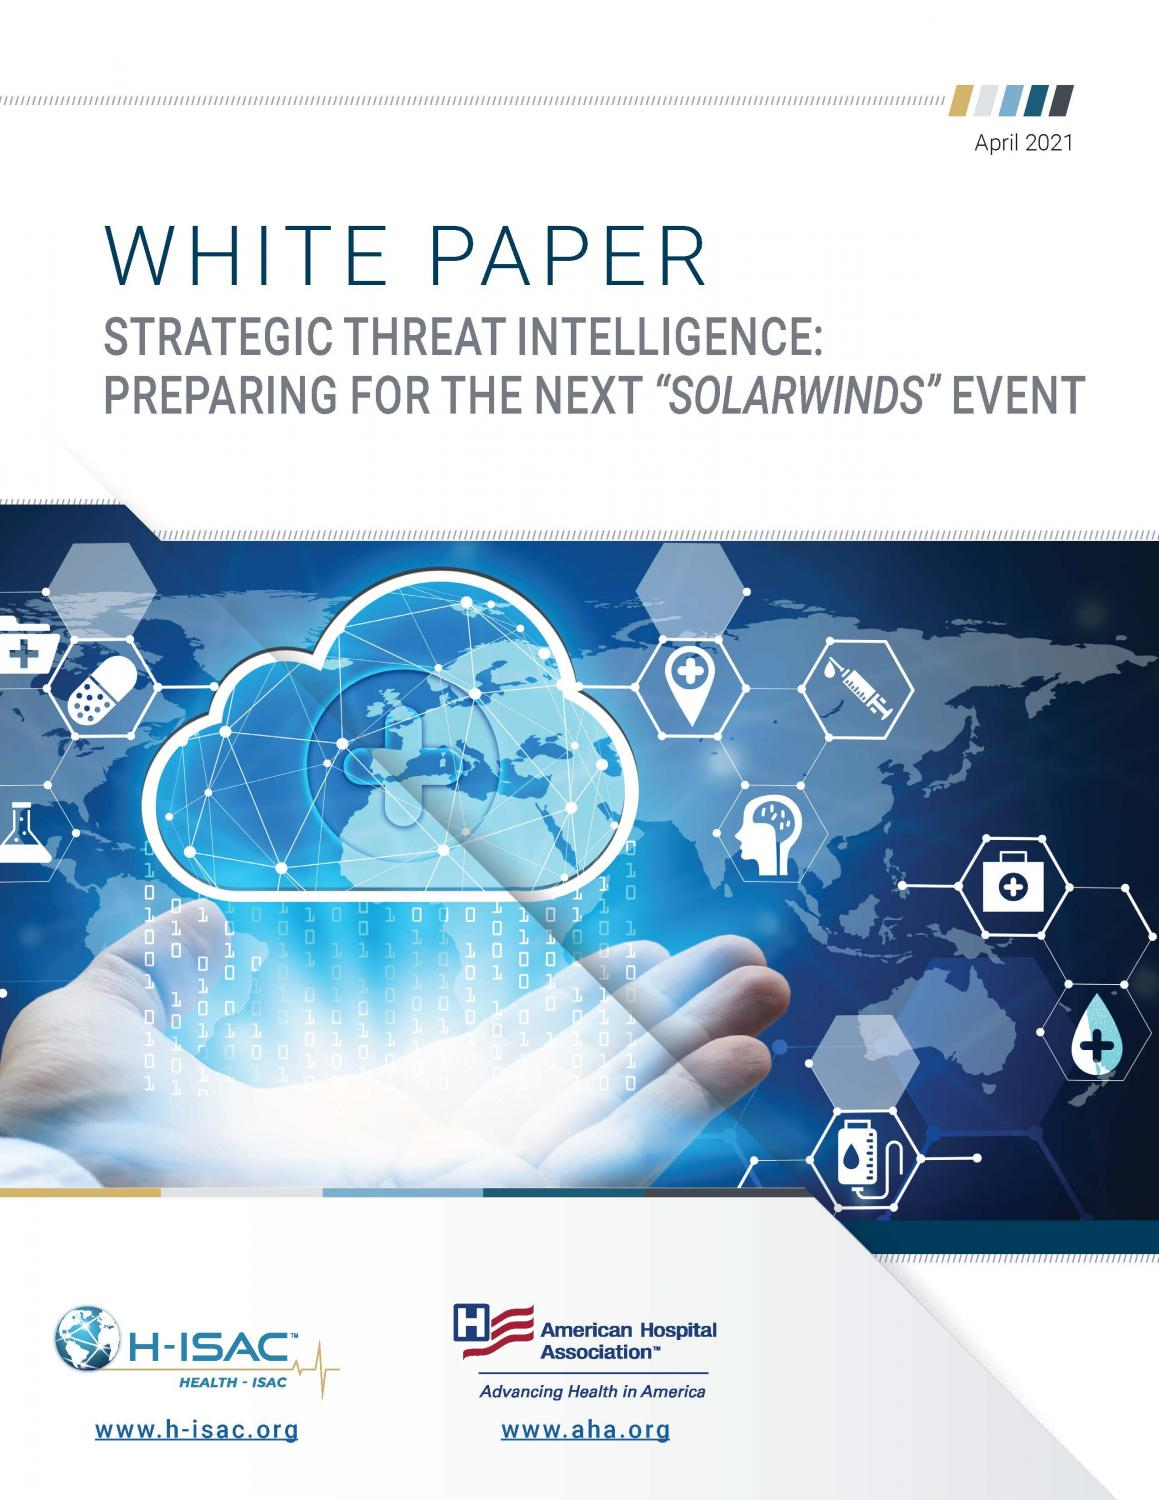 White Paper: Strategic Threat Intelligence: Preparing for the Next Solarwinds Event page 1